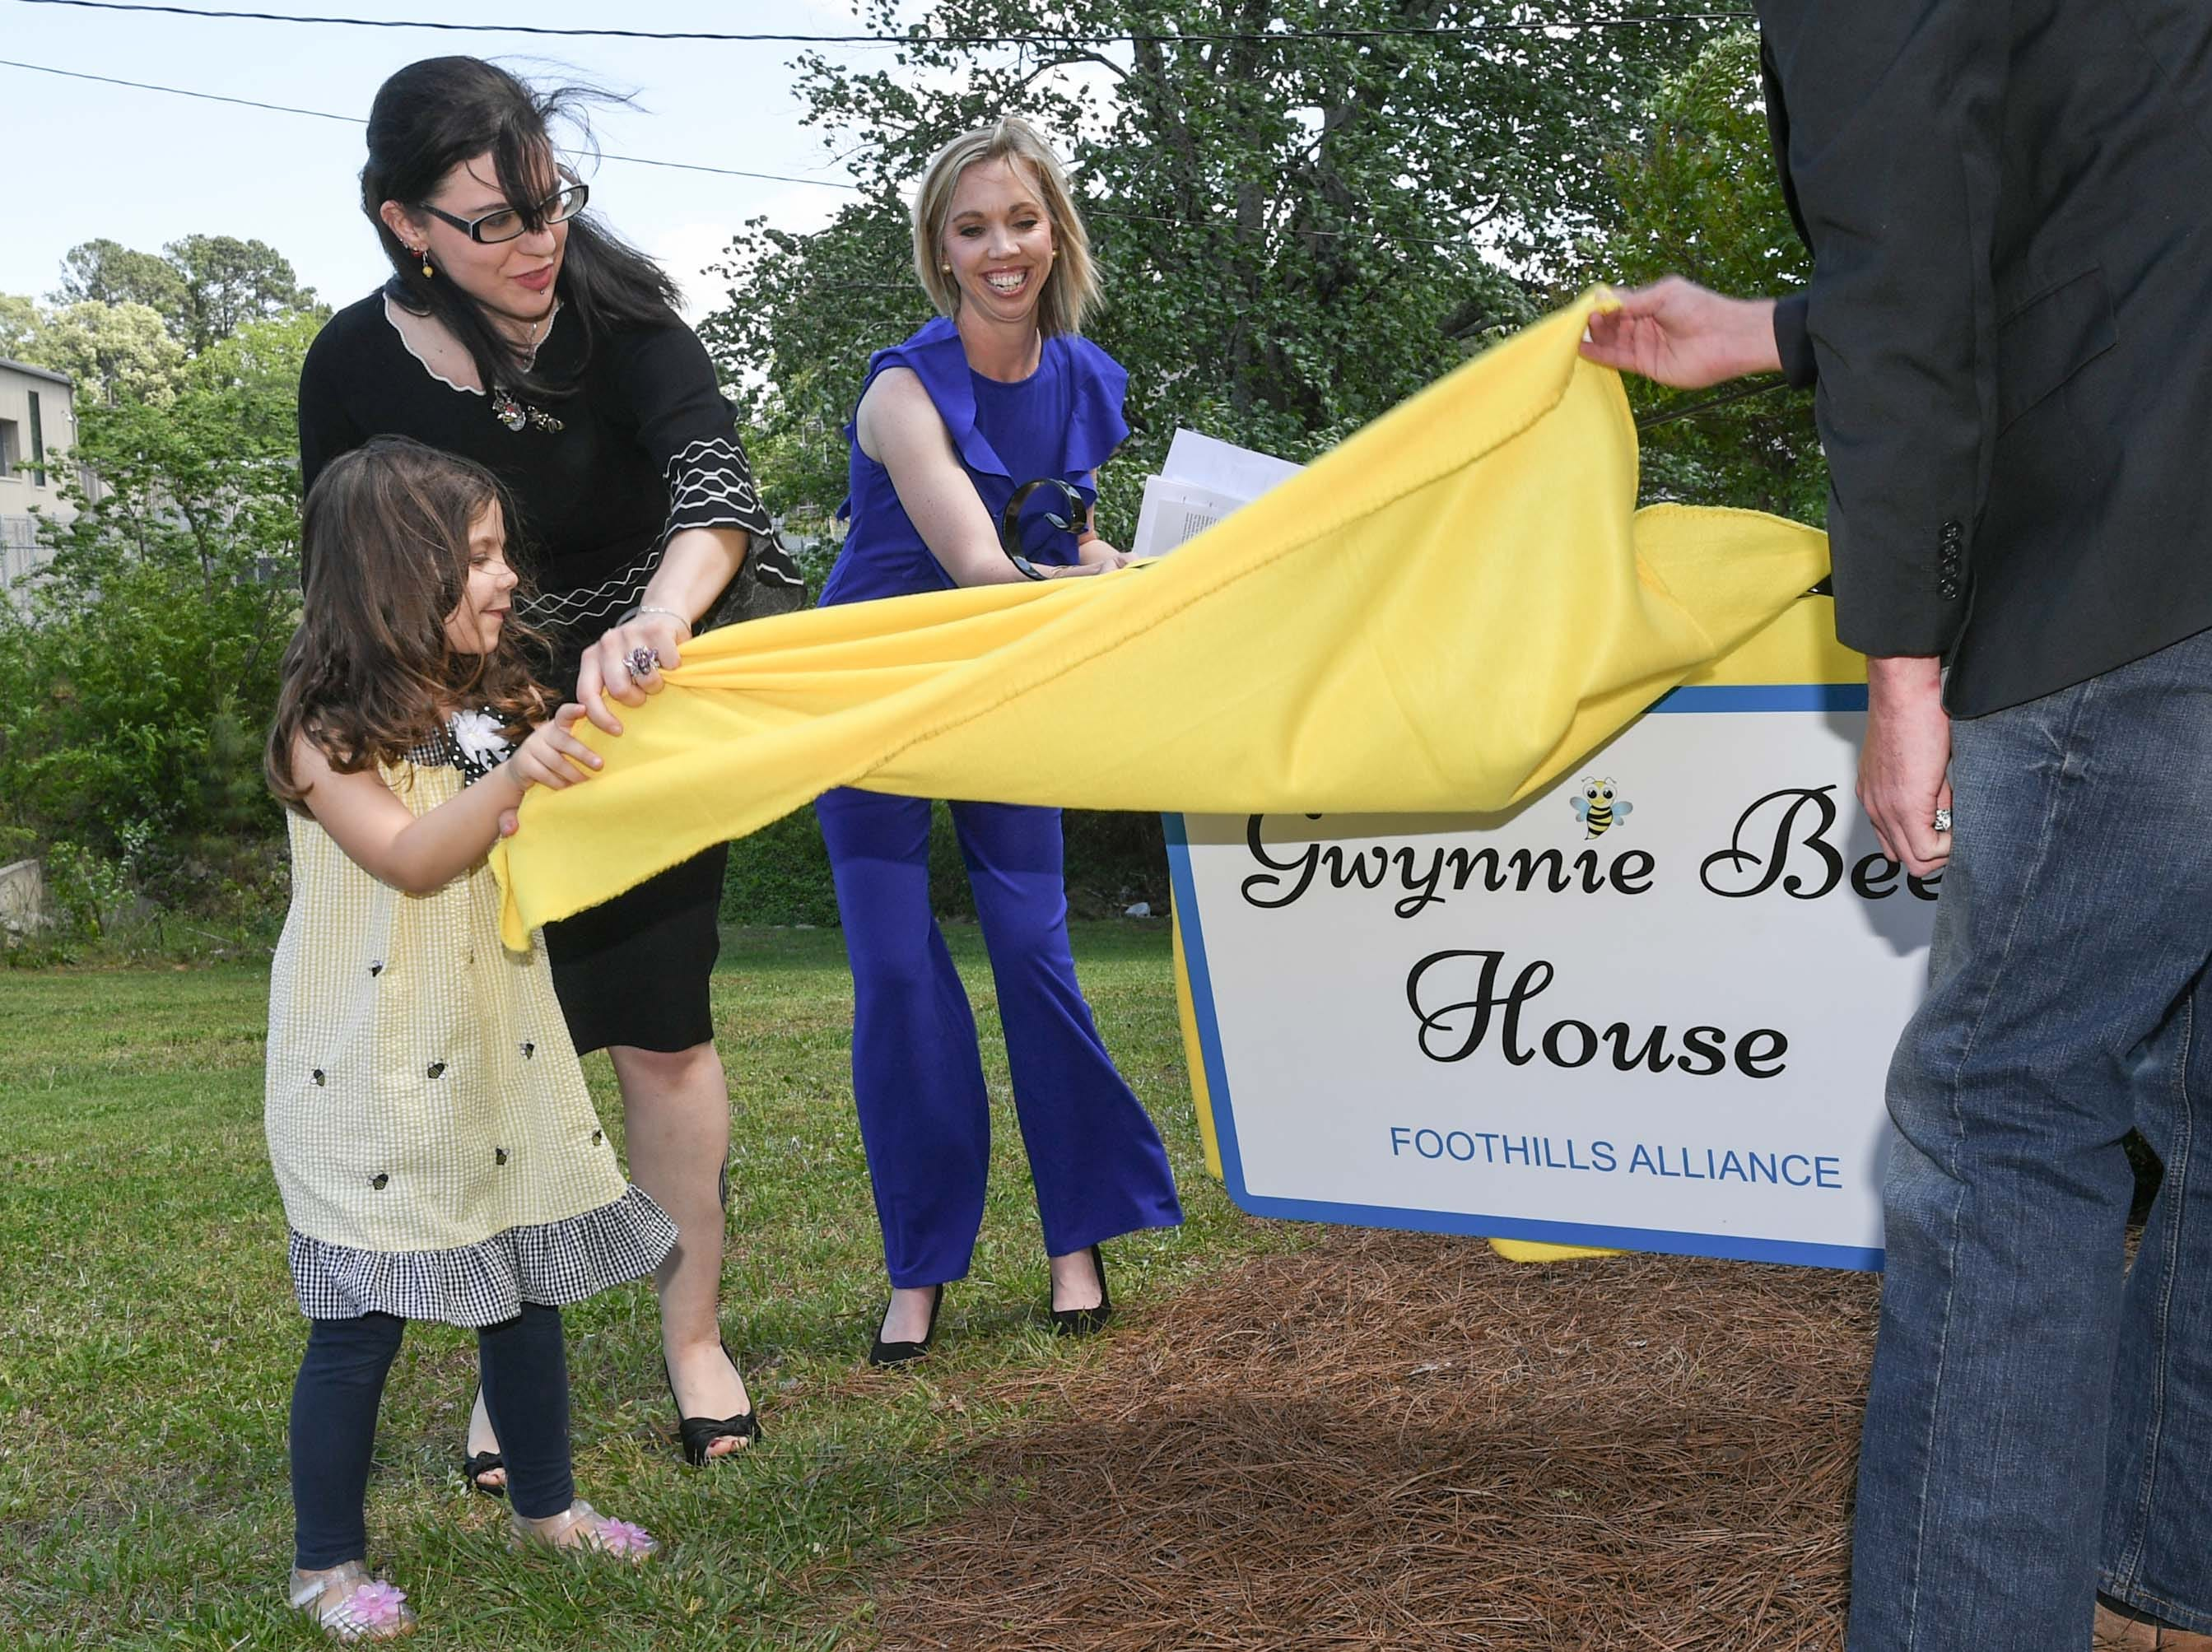 "Gracie Hess, left, pulls a cloth off a sign with her mother Ravyn Hammond, middle, and Sandra Campbell, right, Foothills Alliance counselor, during an office dedication of the Foothills Alliance Oconee County Gwynnie Bee House in Walhalla Friday. Foothills Alliance, who with partners provides education, advocacy, and treatment services to prevent sexual assault trauma and child abuse services in Anderson and Oconee Counties, branched out from their Anderson office with an office in Walhalla last August. Hammond lost her daughter Gwynne Ann-Marie Hess, ""Gwynnie Bee"", in 2017 from child abuse, and the office was renamed after her Friday in the presence of family, law enforcement, Sen. Thomas Alexander, Oconee County Sheriff Michael Crenshaw, and Tenth Circuit Solicitor David Wagner."